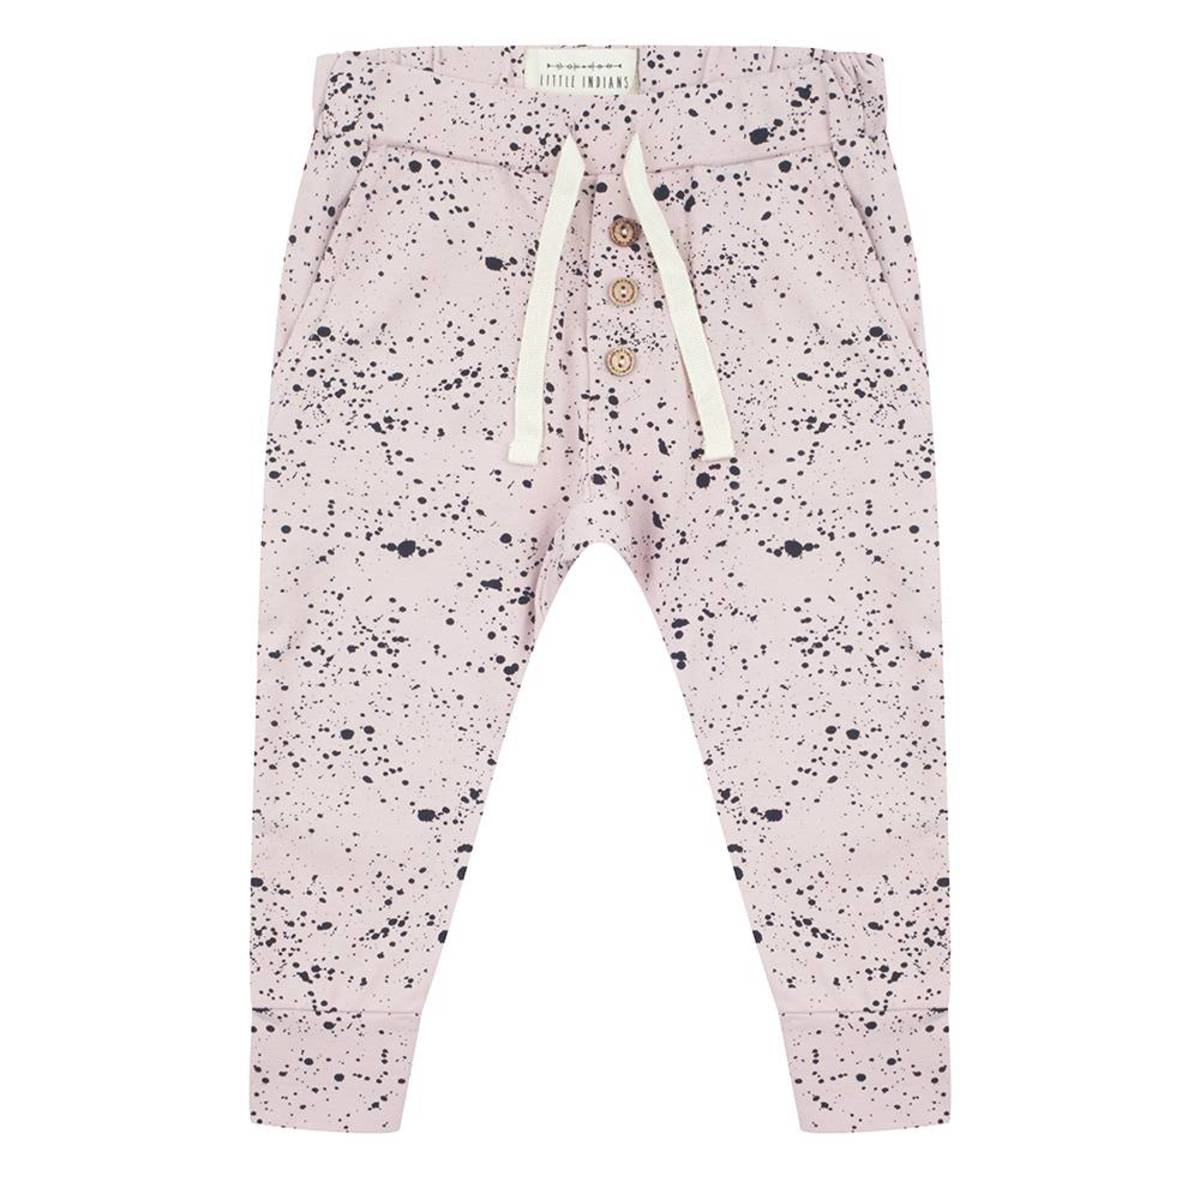 Bas Bébé Pantalon Splash Rose - 3/4 ans Pantalon Splash Rose - 3/4 ans